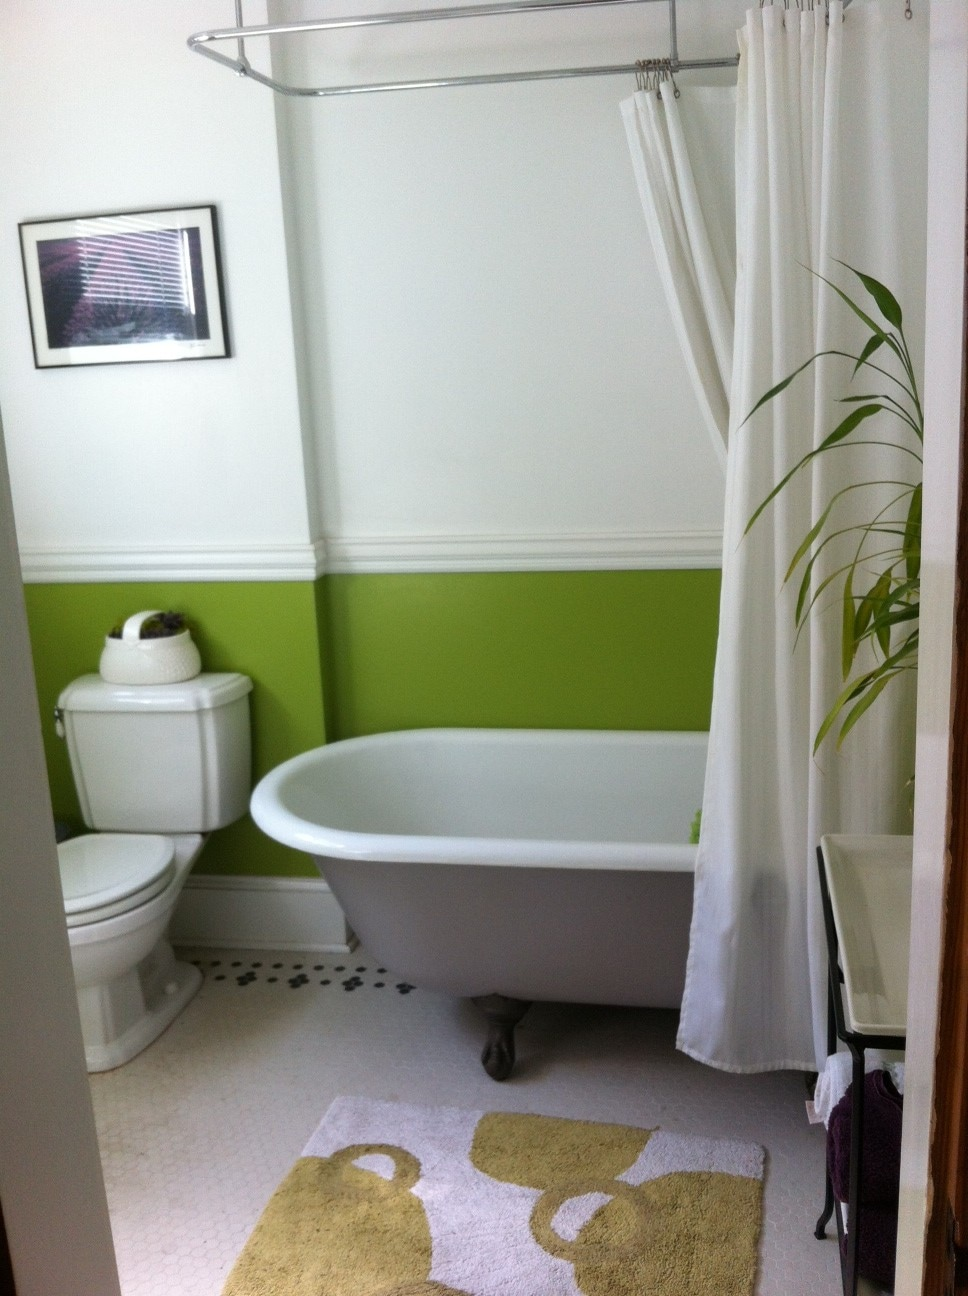 Here's the guest bathroom! Yup, it's a clawfoot tub!